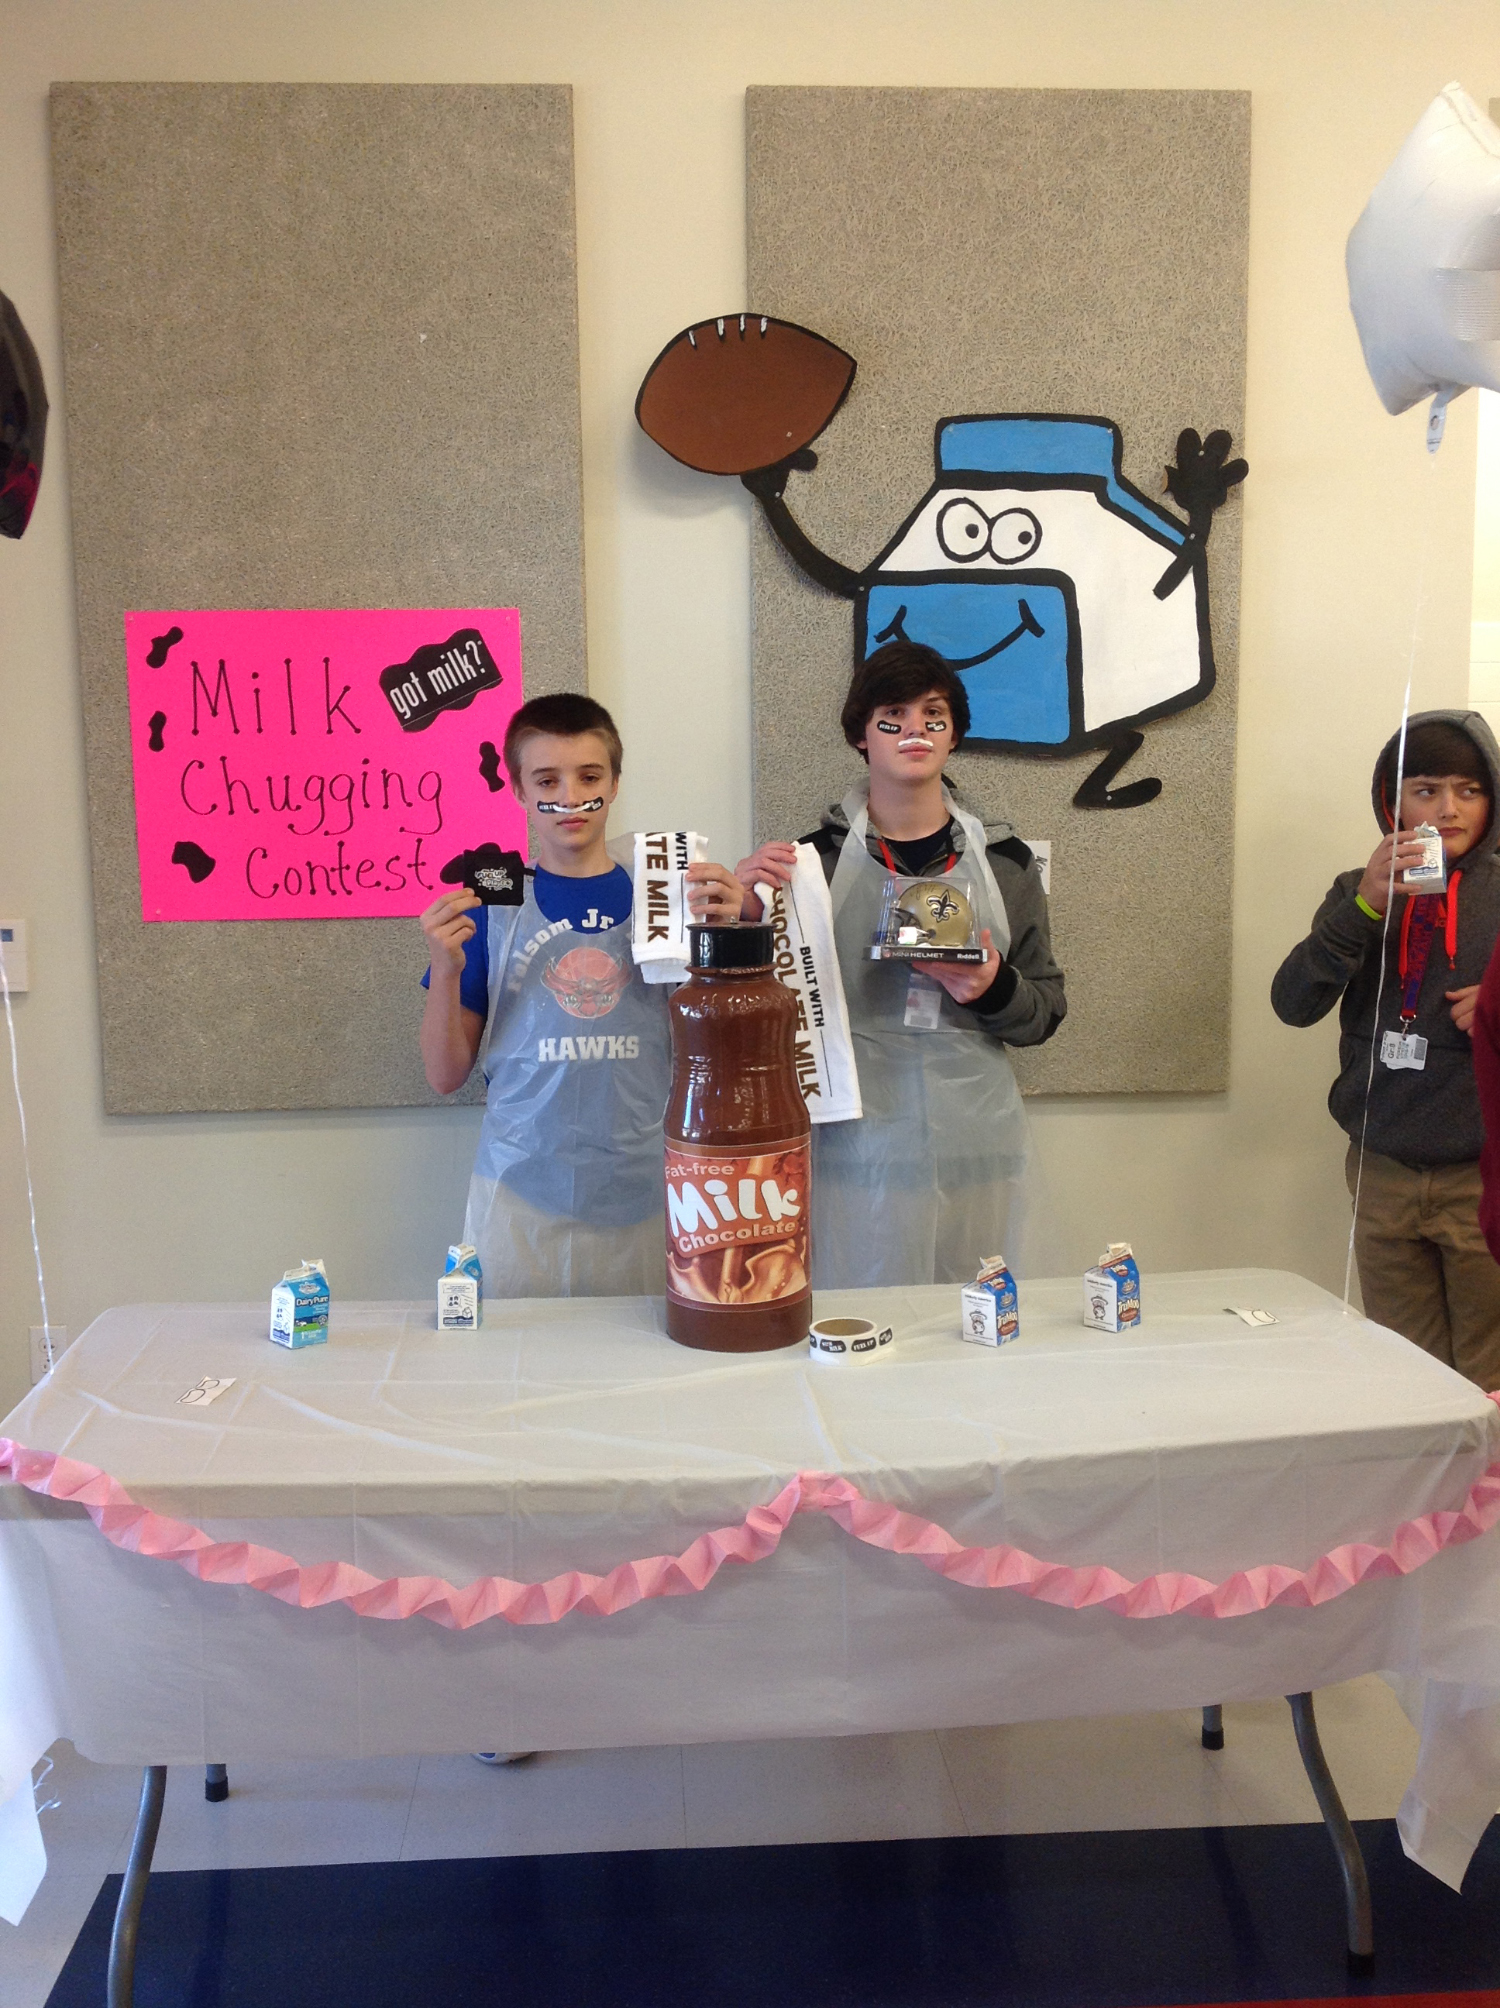 Folsom Jr. High School's Milk Day Chugging Contest Image 2